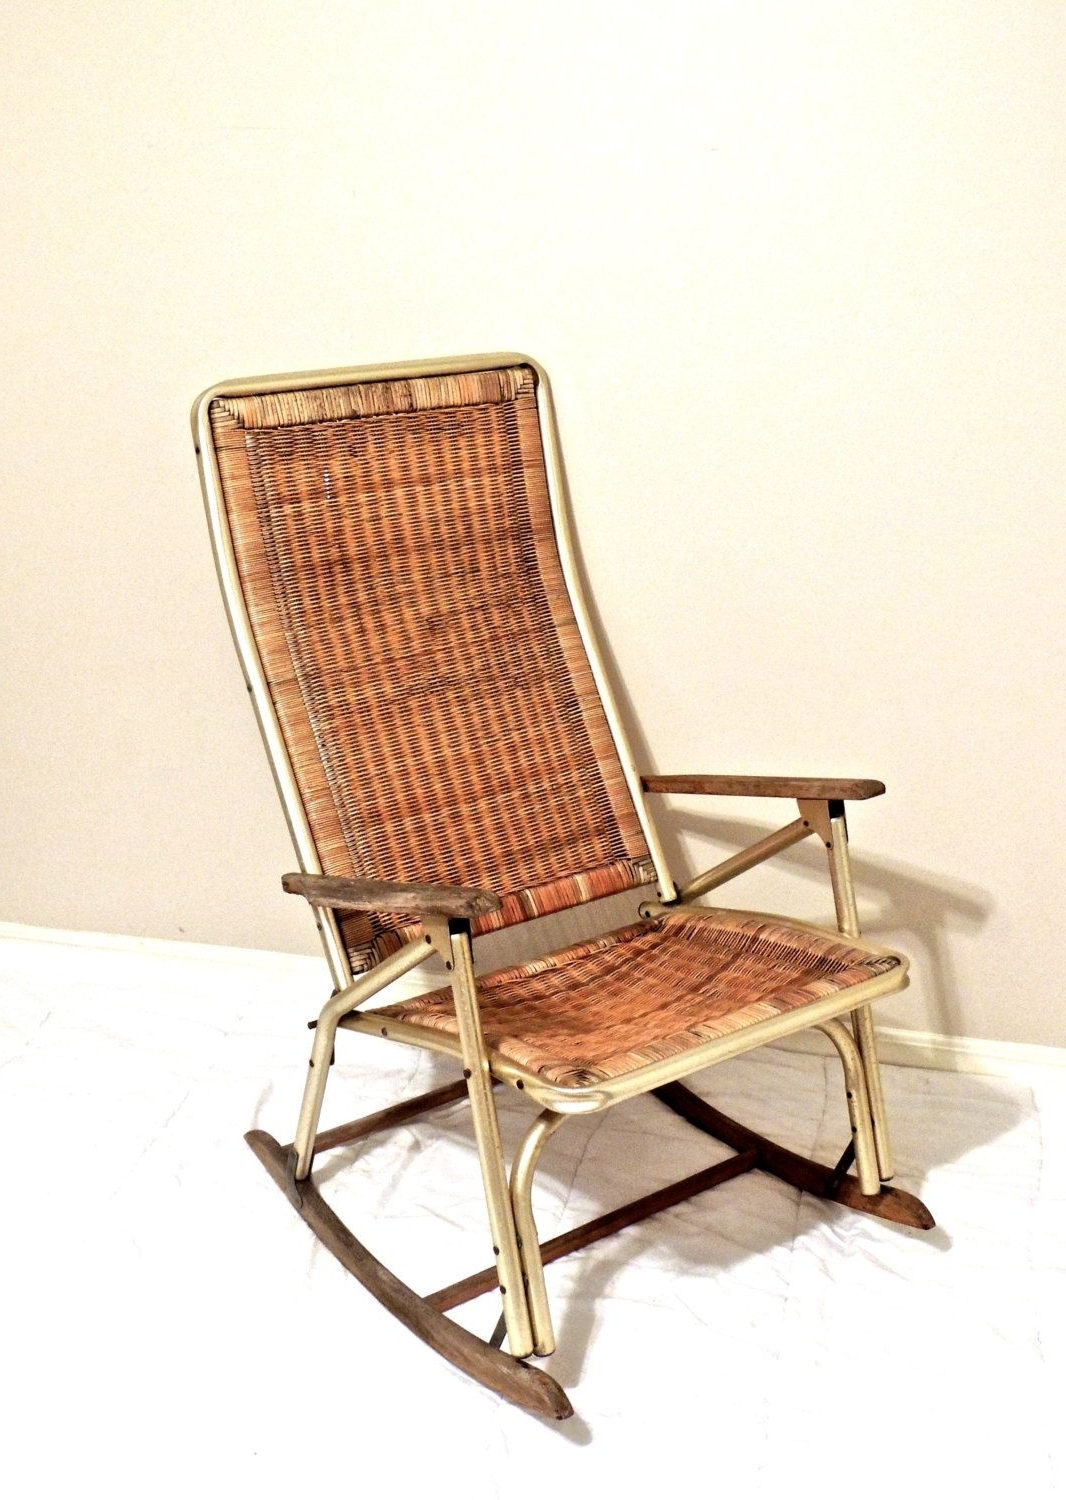 Best And Newest Vintage Wicker Rocking Chairs Pertaining To Vintage Wicker Rocking Chair – 1950S 60S Mid Century Gold/wicker (View 3 of 15)